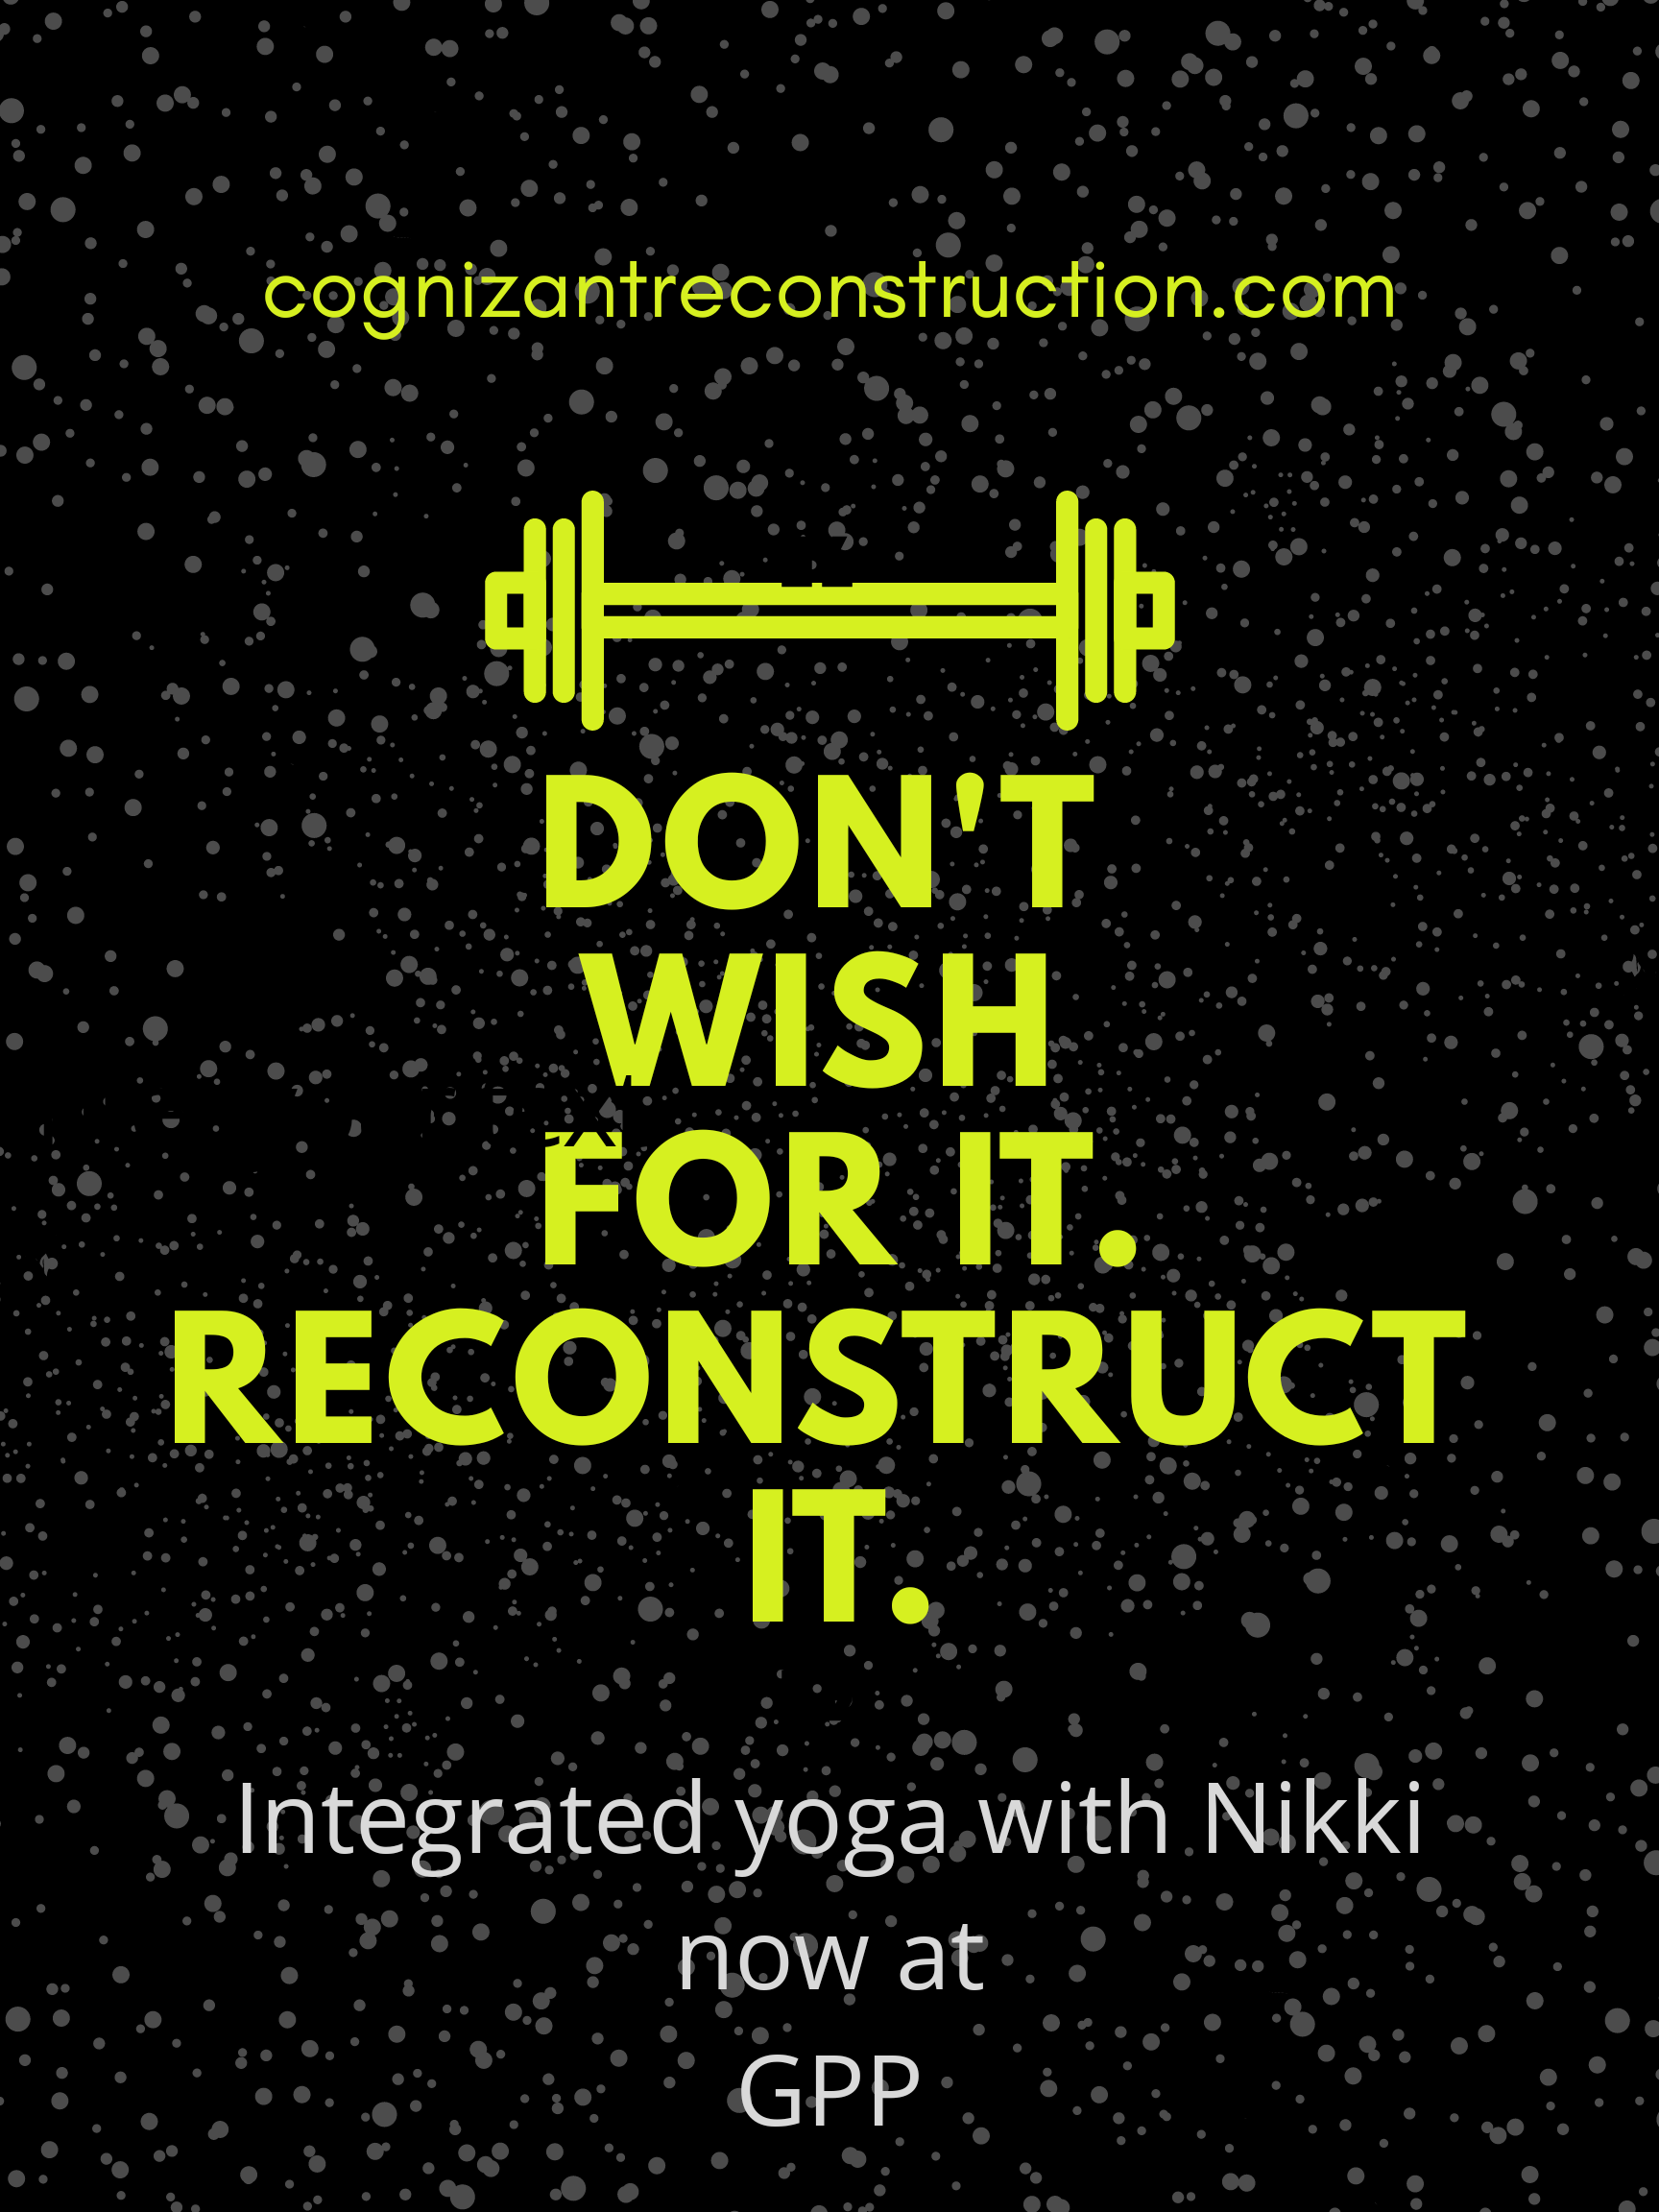 YOGA today at 10:30 AM (FREE today)